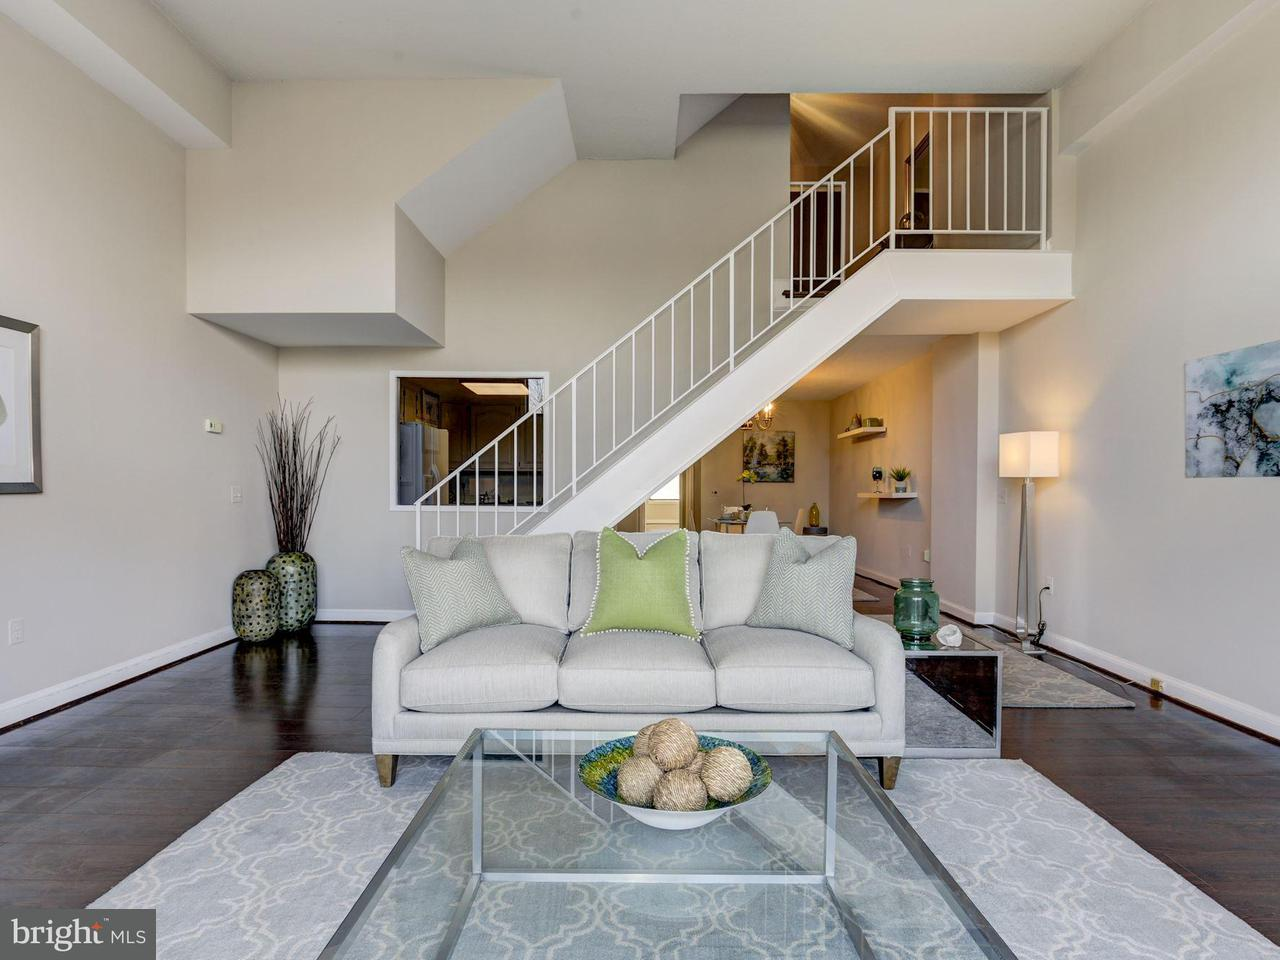 Additional photo for property listing at 3101 New Mexico Ave NW #543  Washington, District Of Columbia 20016 United States